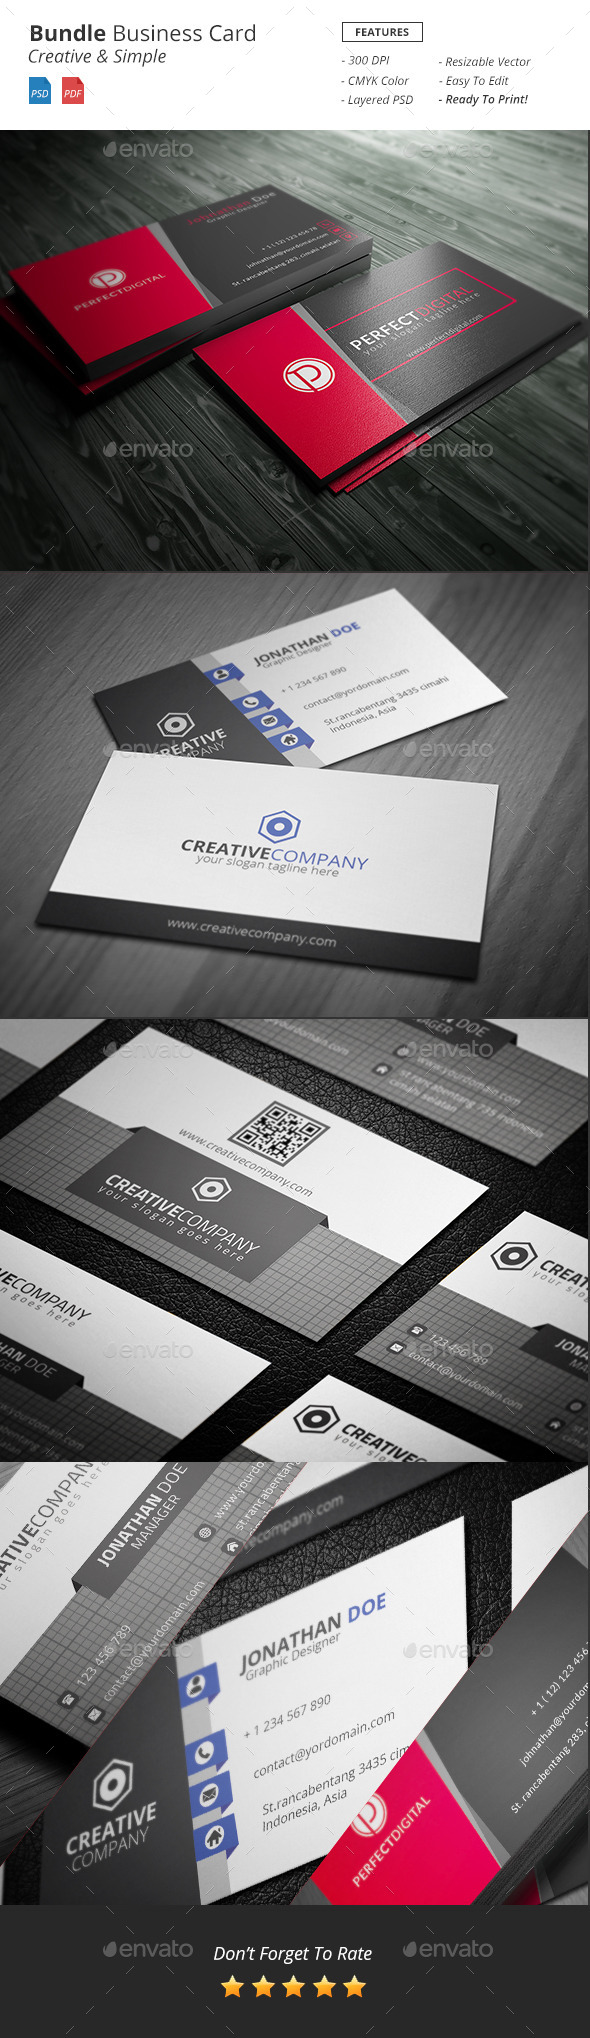 GraphicRiver Bundle Business Card 11766384